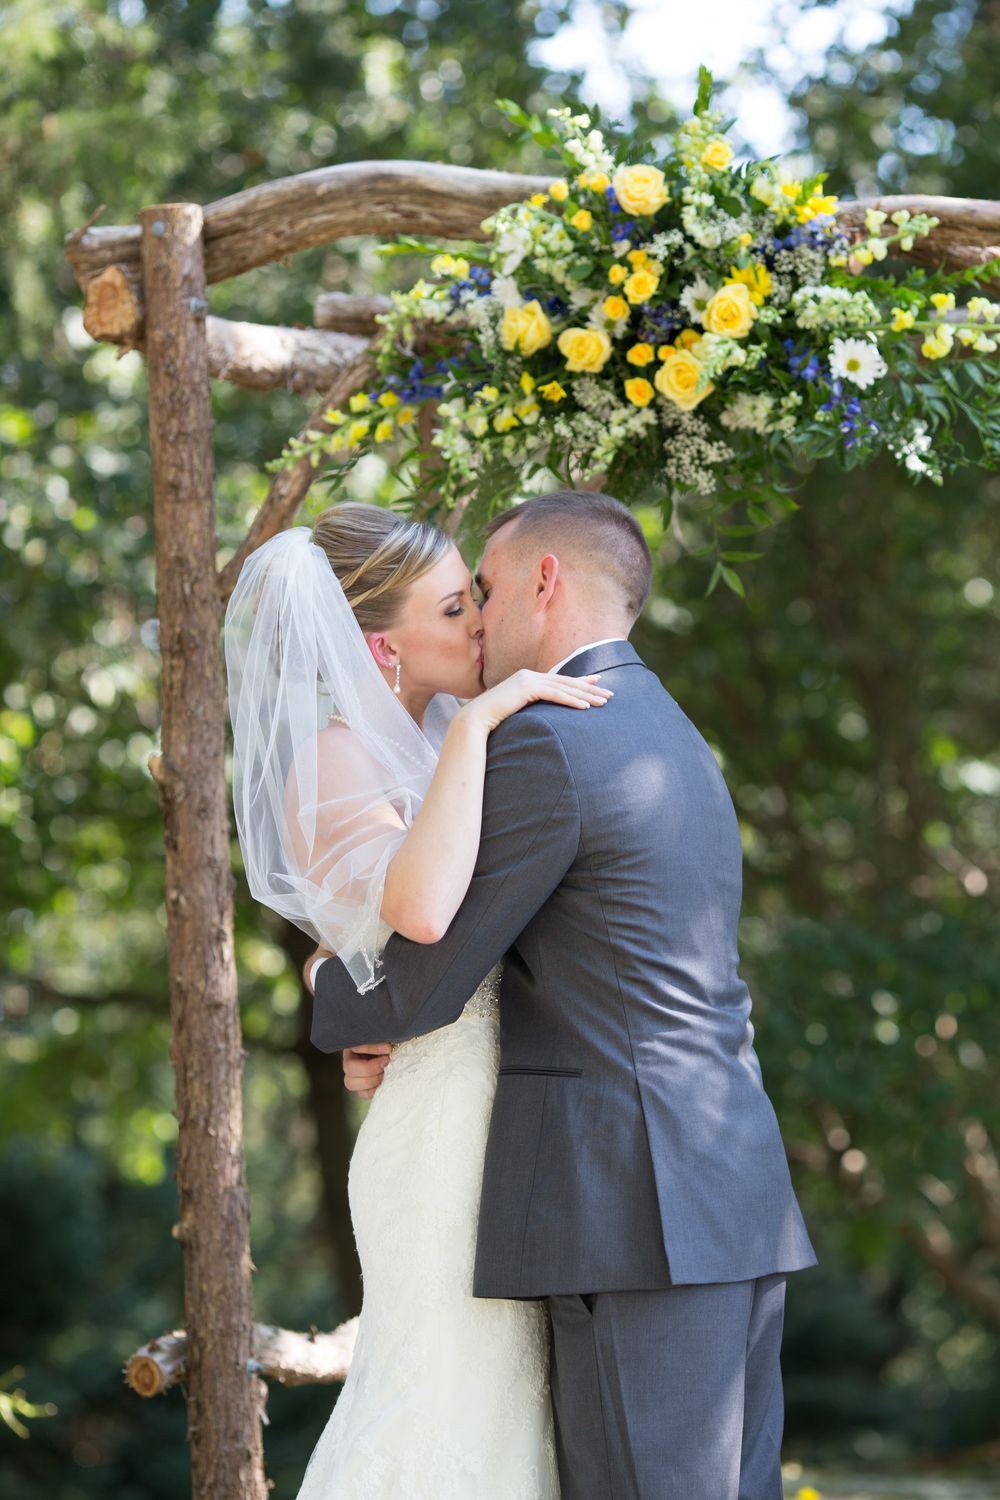 Summer Kelley PhotographyRaychel & Jimmy's Ellicott City Farm Wedding — Summer Kelley Photography